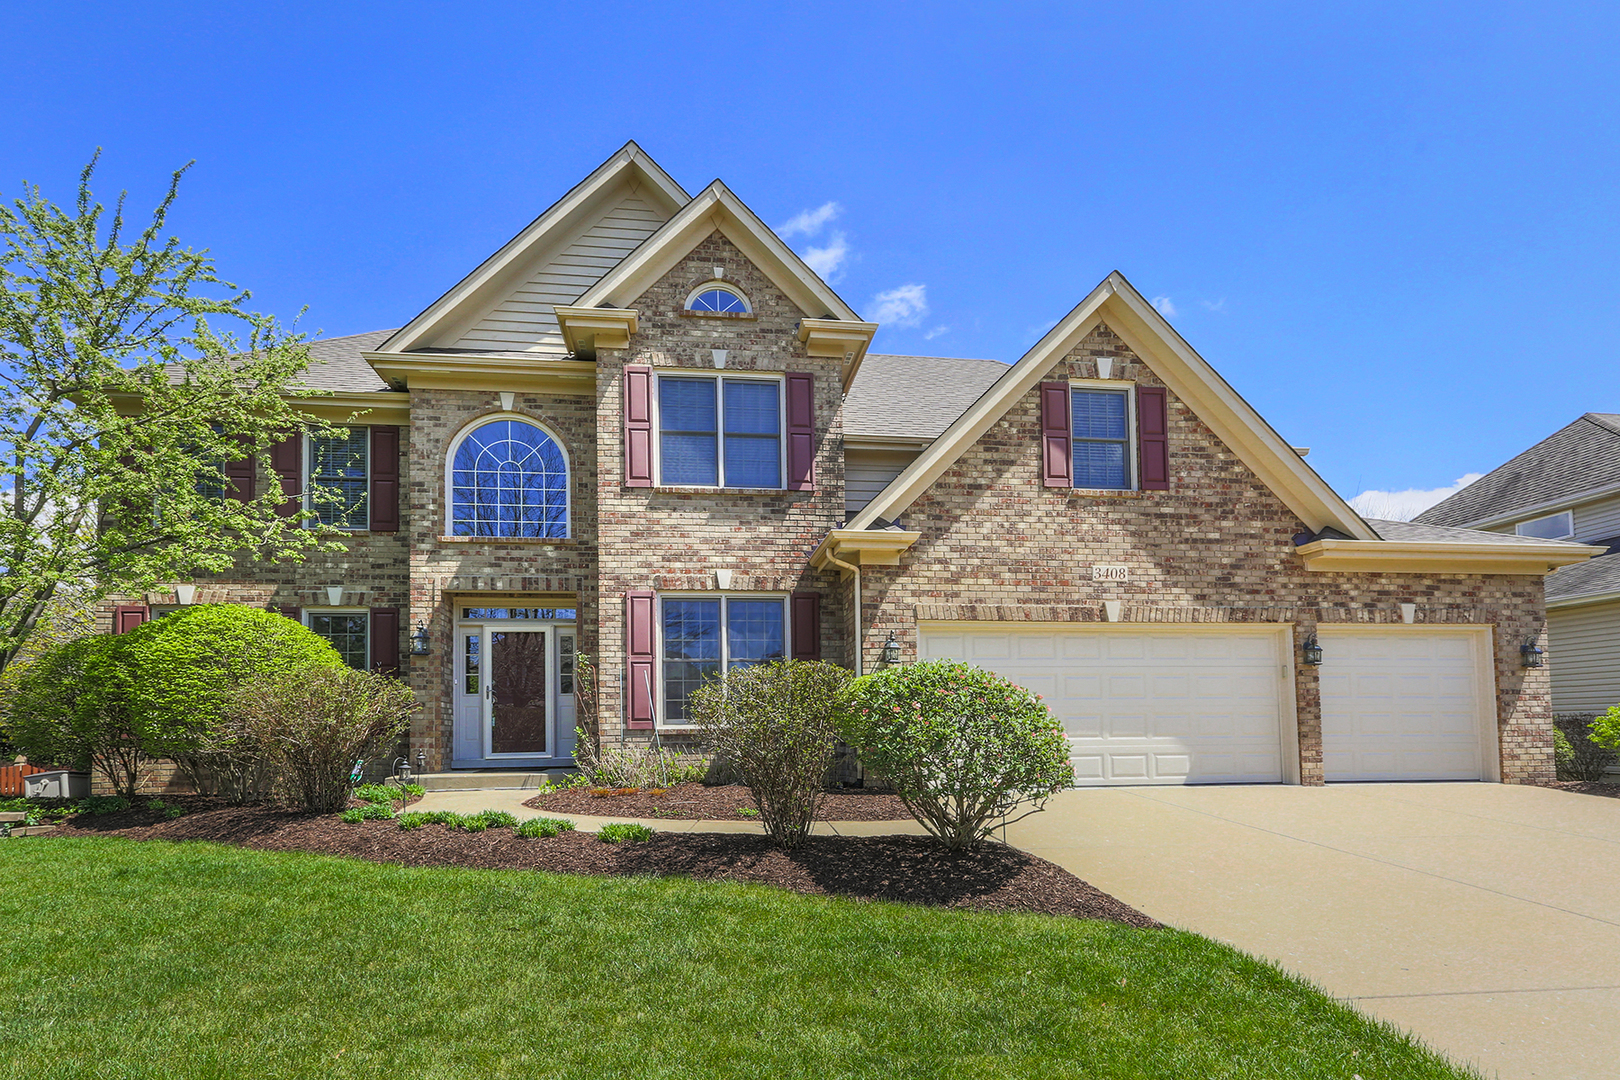 3408-Goldfinch-Drive---NAPERVILLE-Illinois-60564